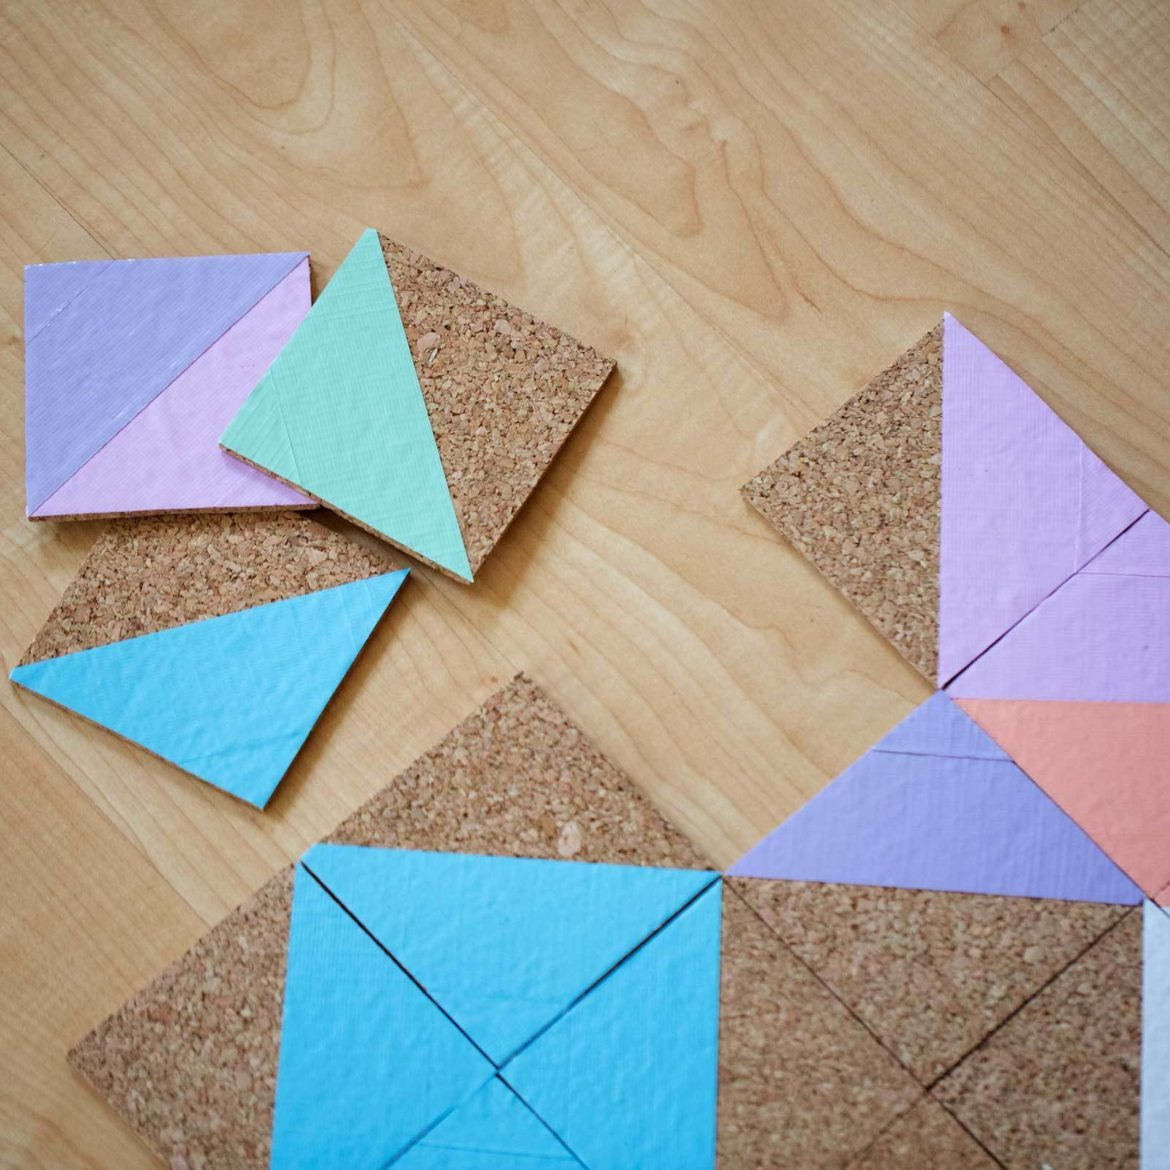 Make a puzzle with cork and Duck Tape